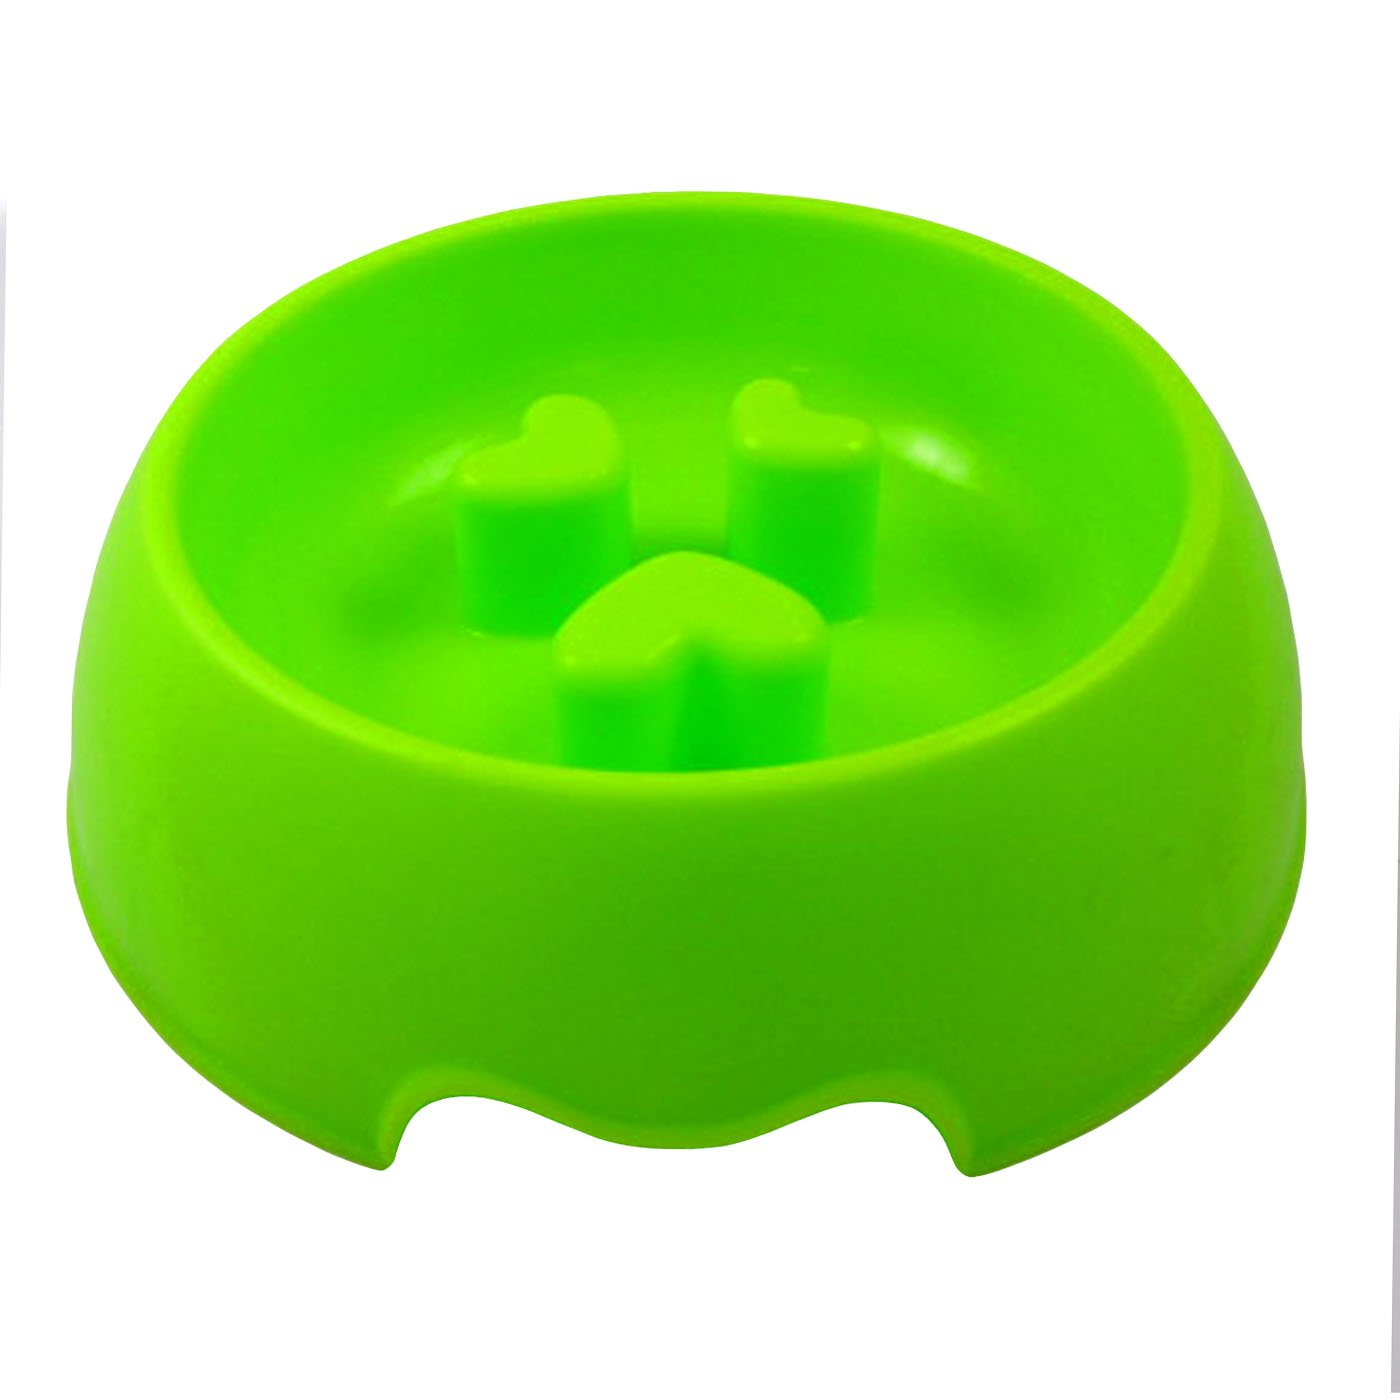 Alfie Pet by Petoga Couture - Sol Slow-Eating Anti-Gulping Pet Food Bowl (for Dogs & Cats) - Size: Medium